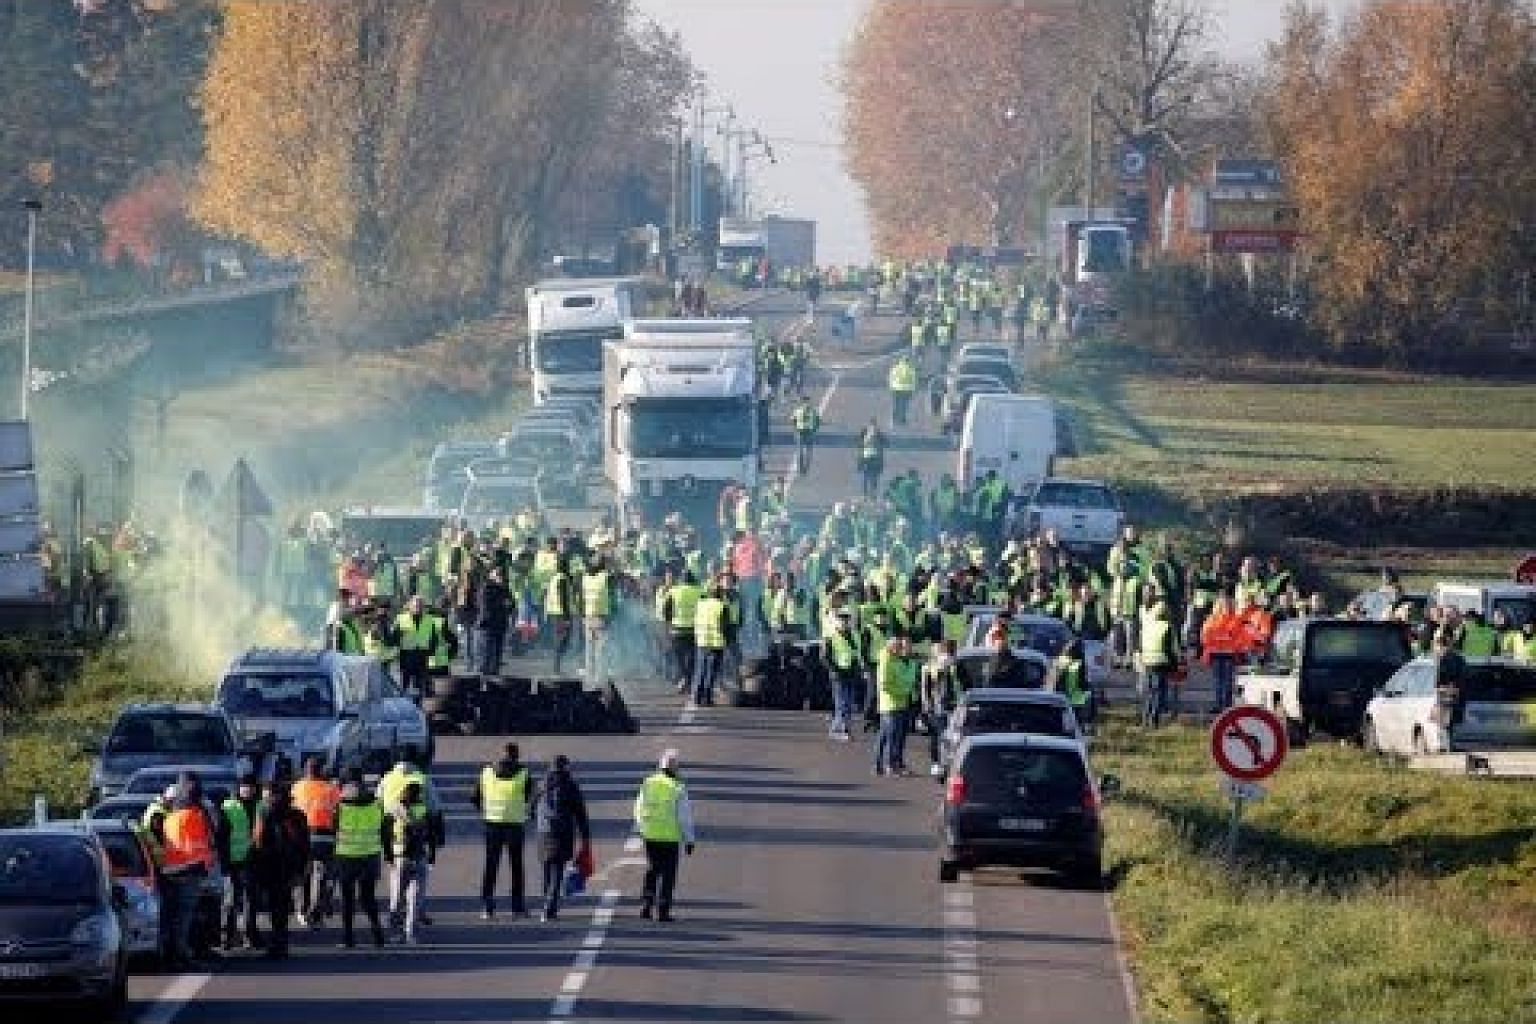 Protester killed in accident during French road blockades